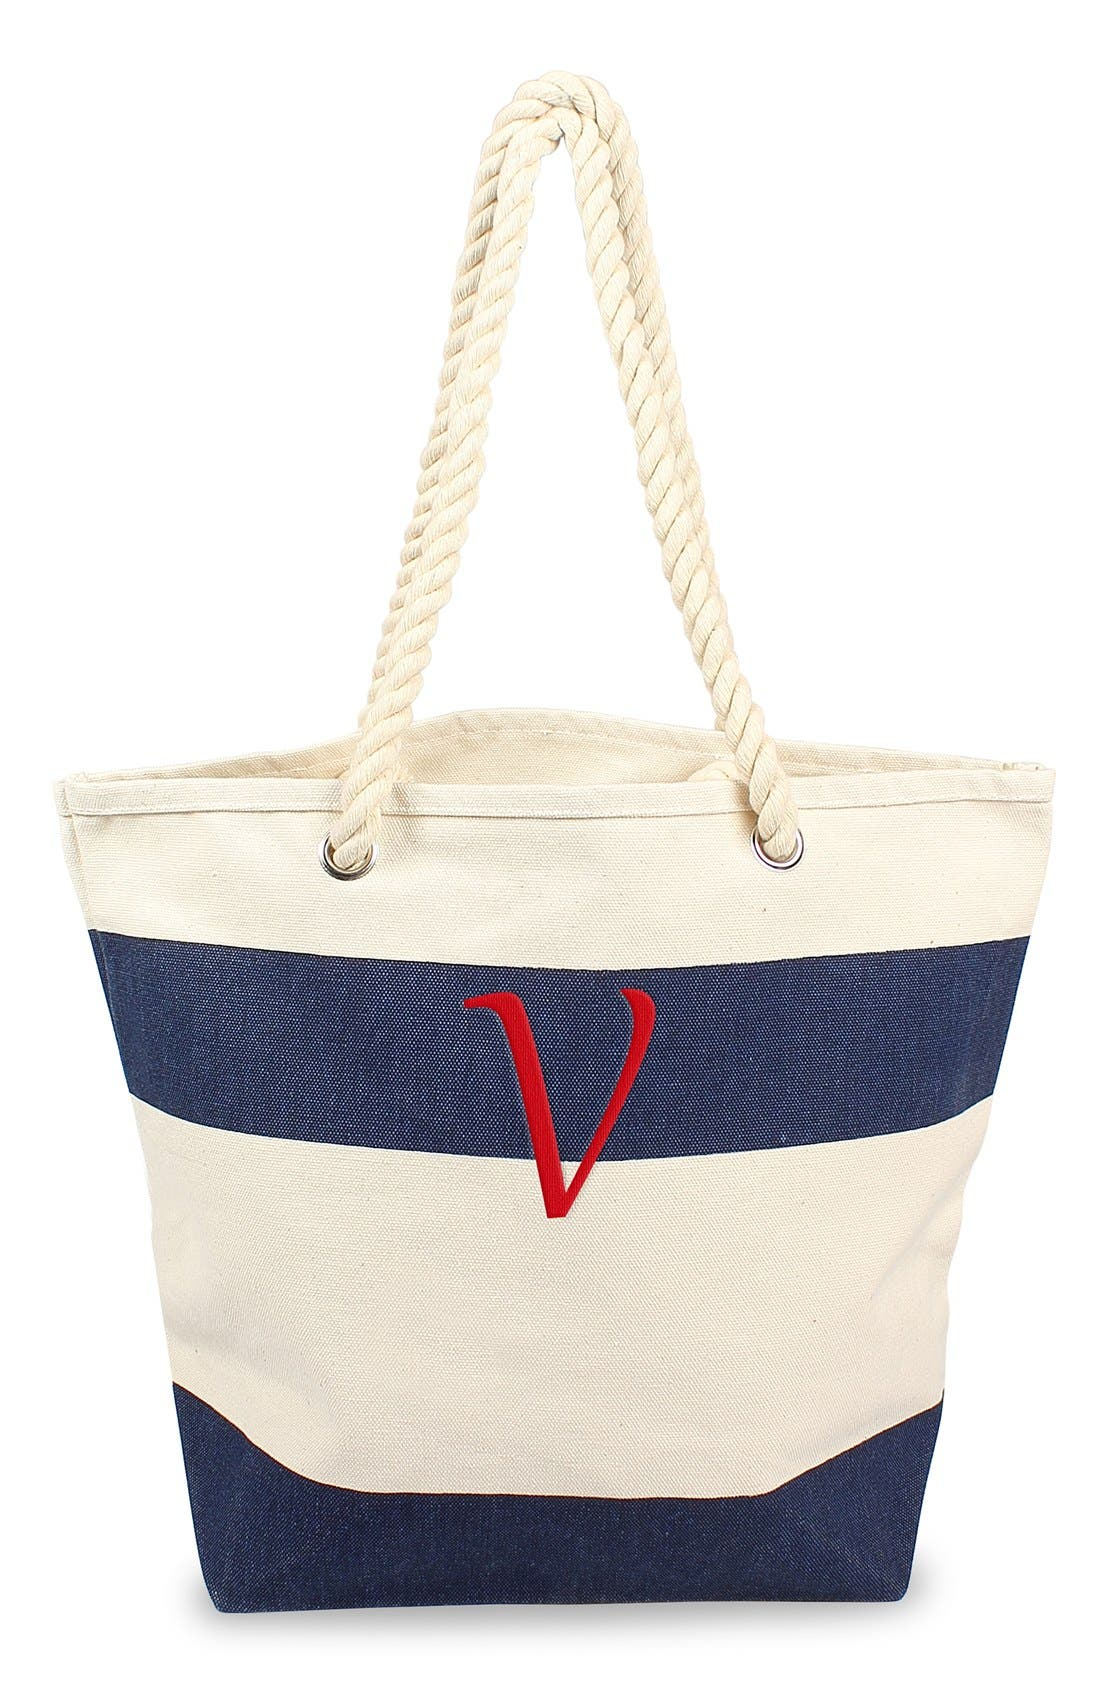 Monogram Stripe Canvas Tote,                             Main thumbnail 1, color,                             432